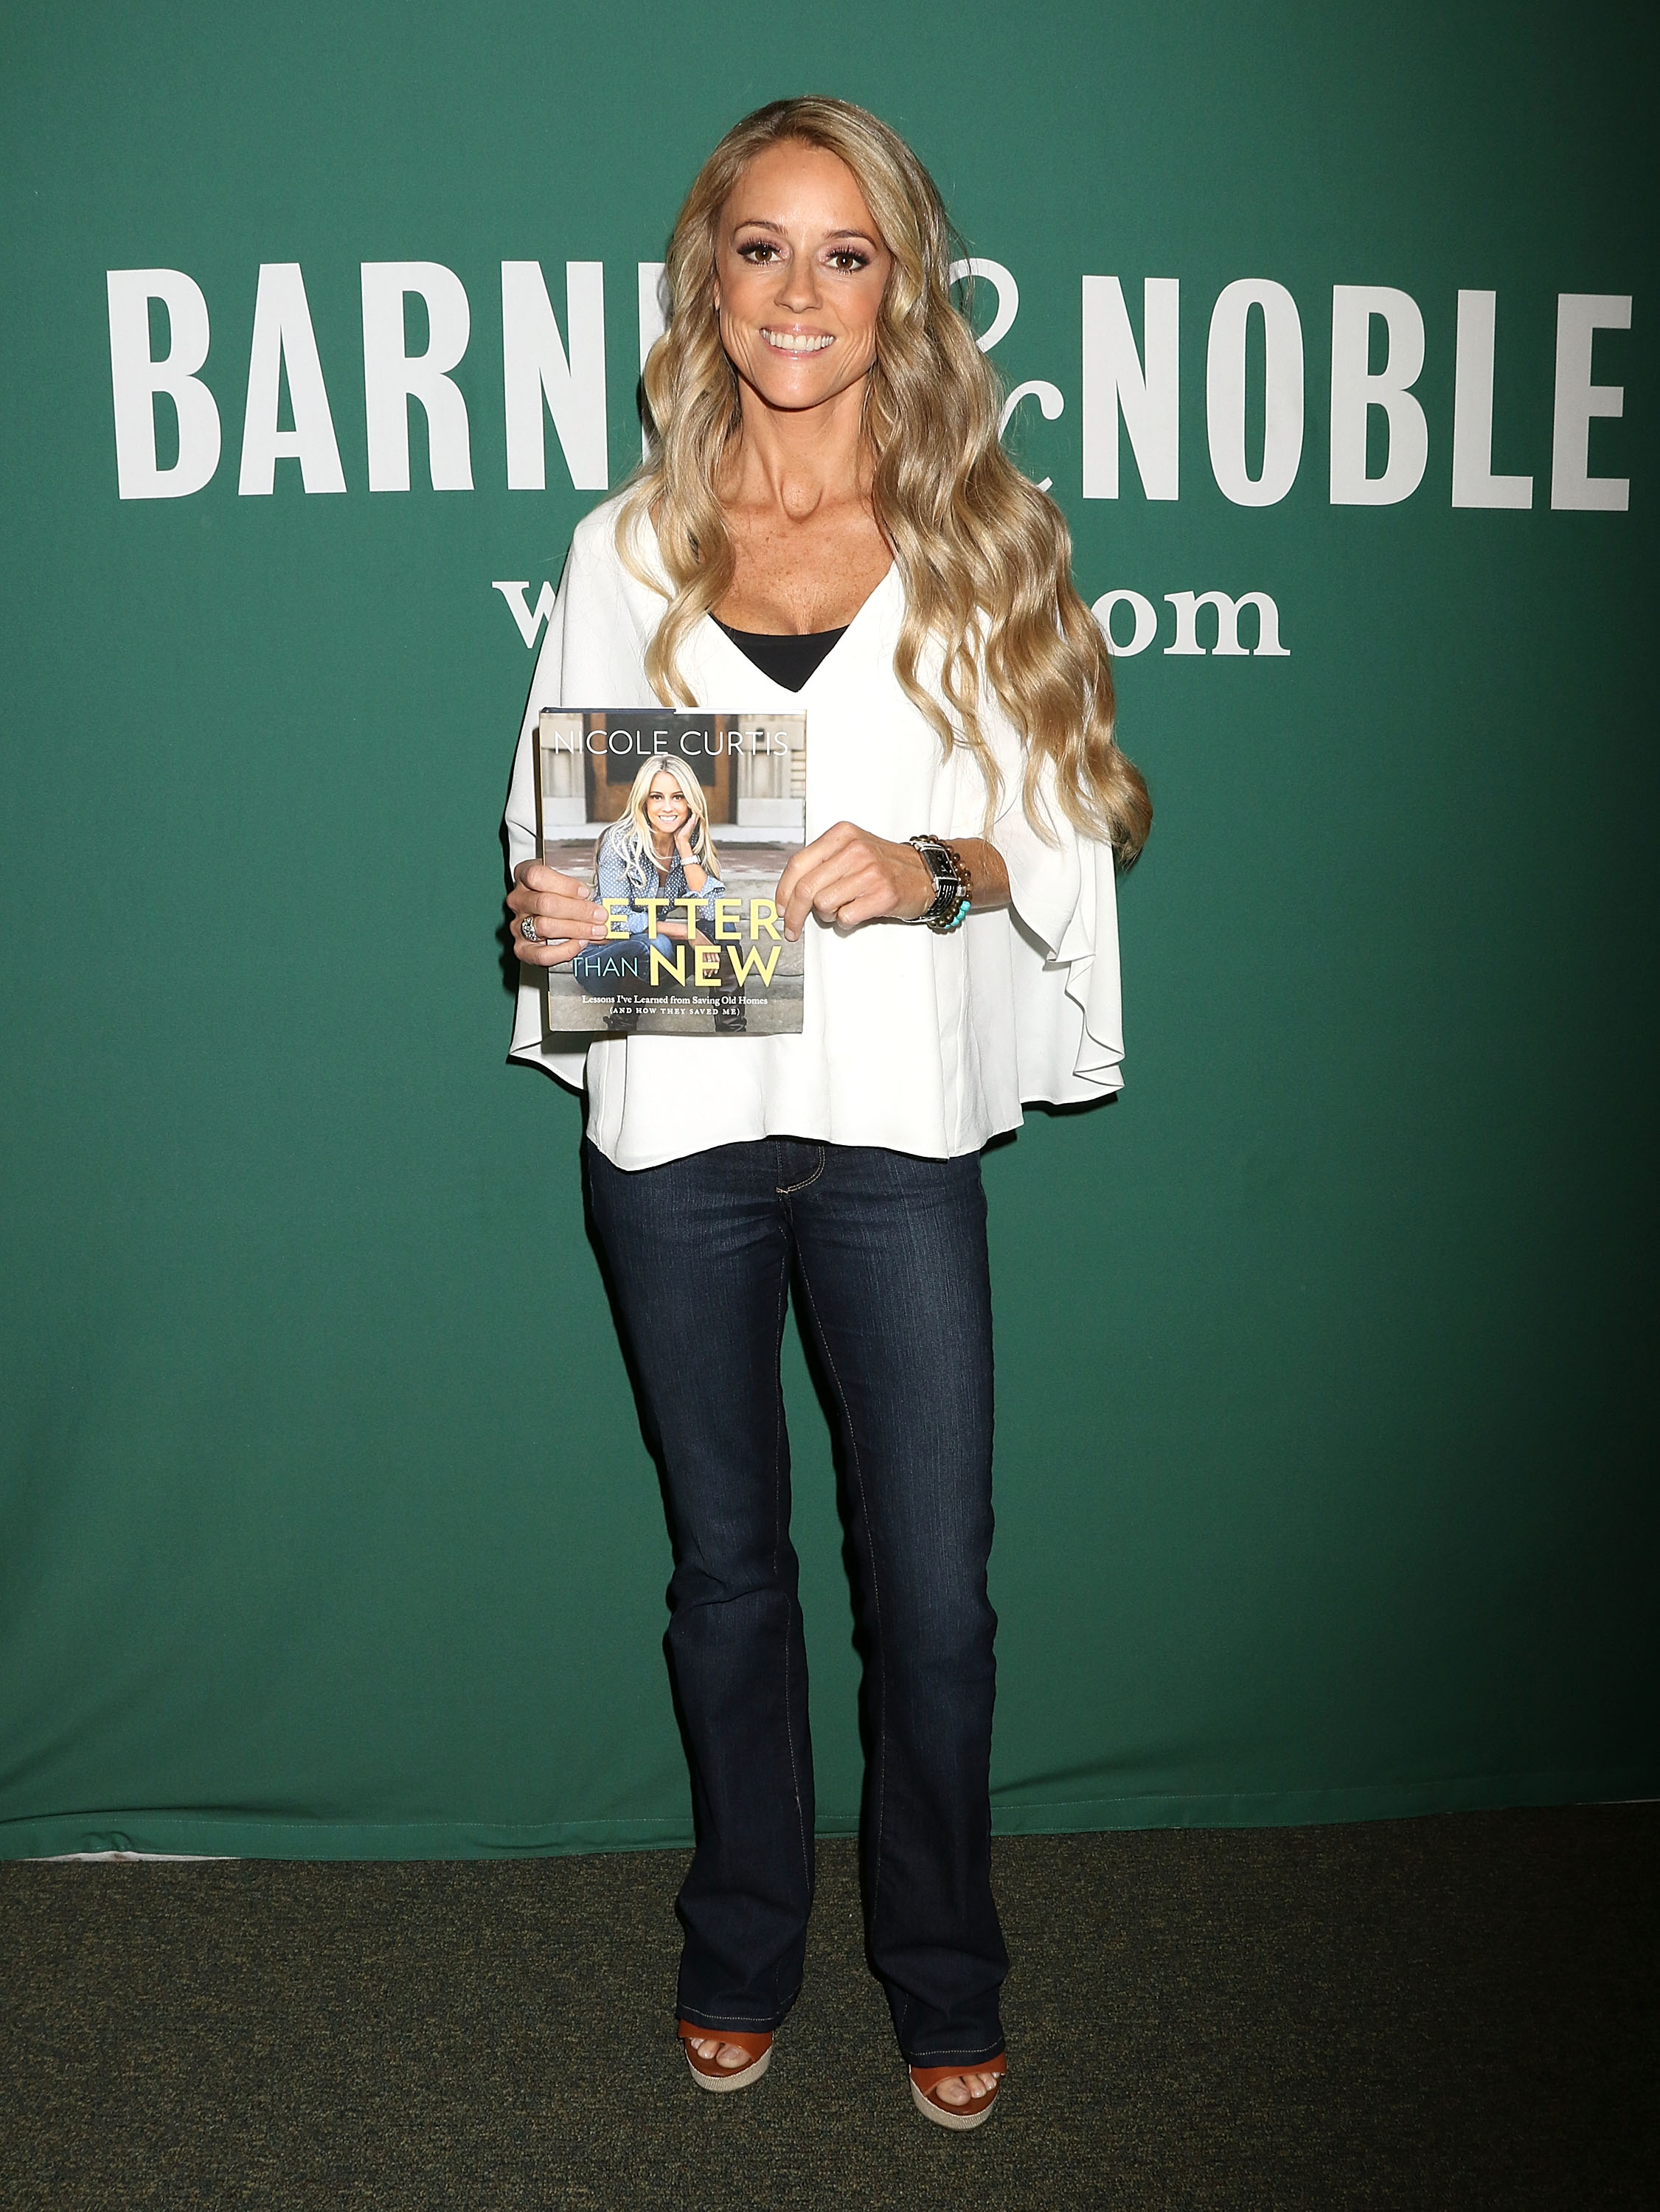 Nicole Curtis signs copies of her book in New York City on October 18, 2016 | Photo: Getty Images